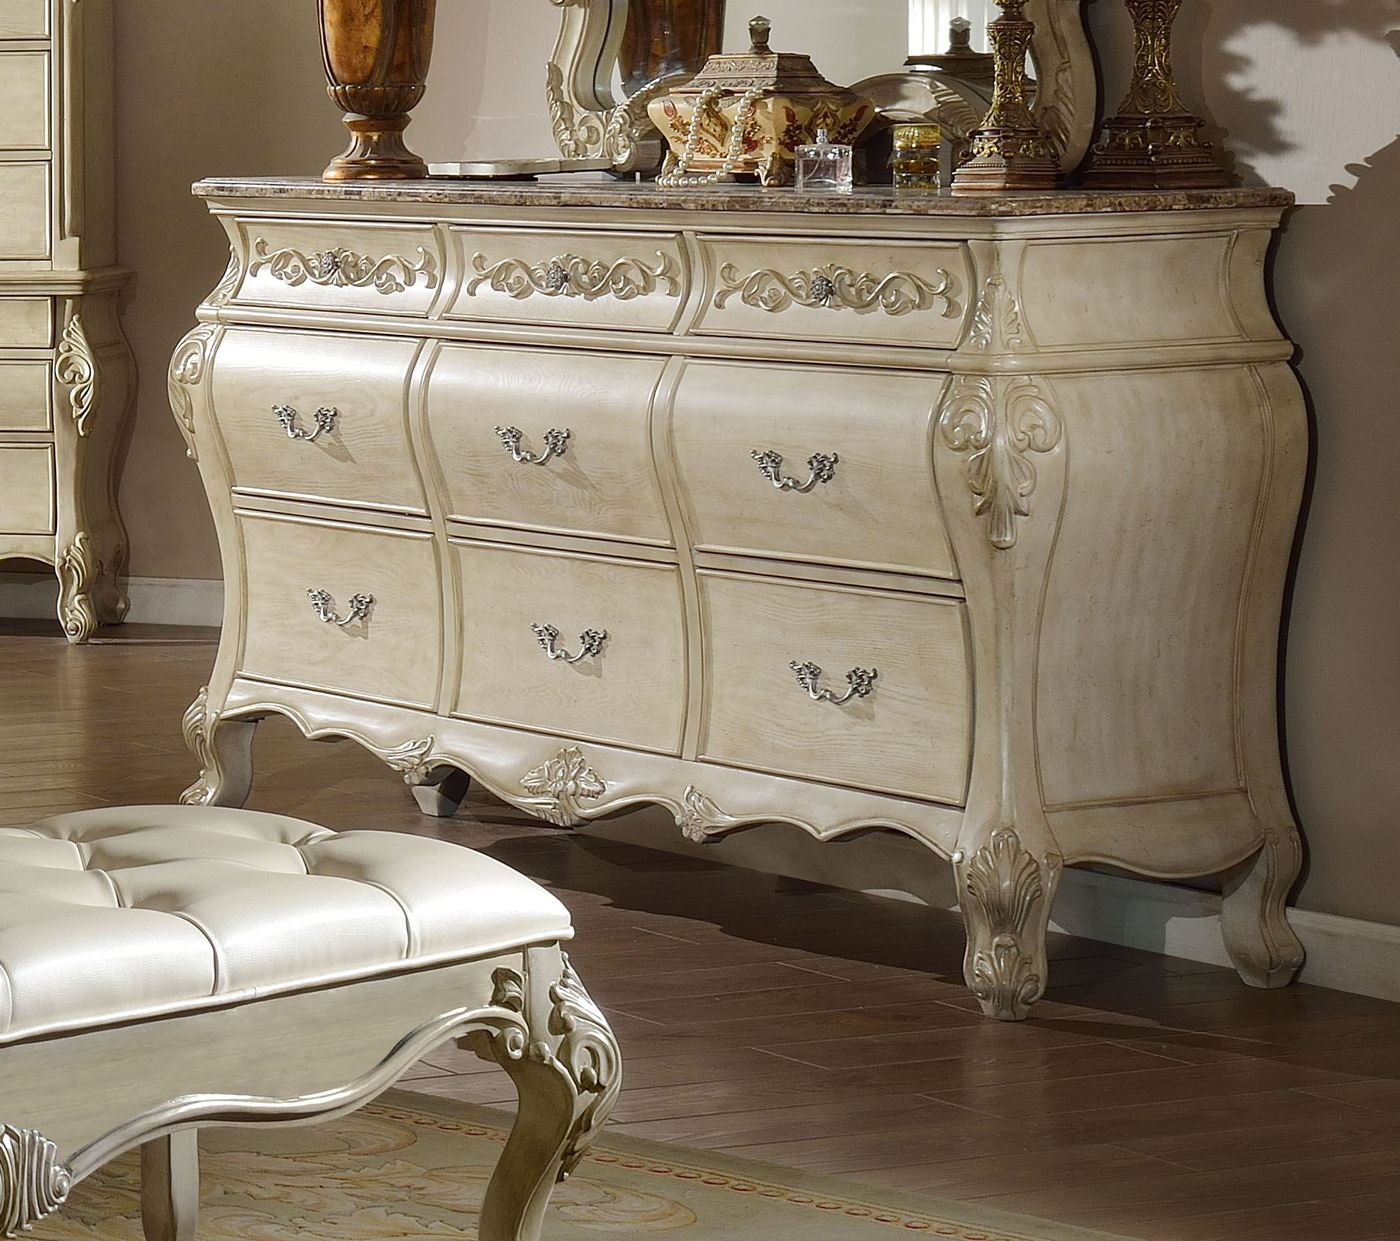 Sanctuary Ornate French 7 Drawer Marble Top Dresser In Antique White